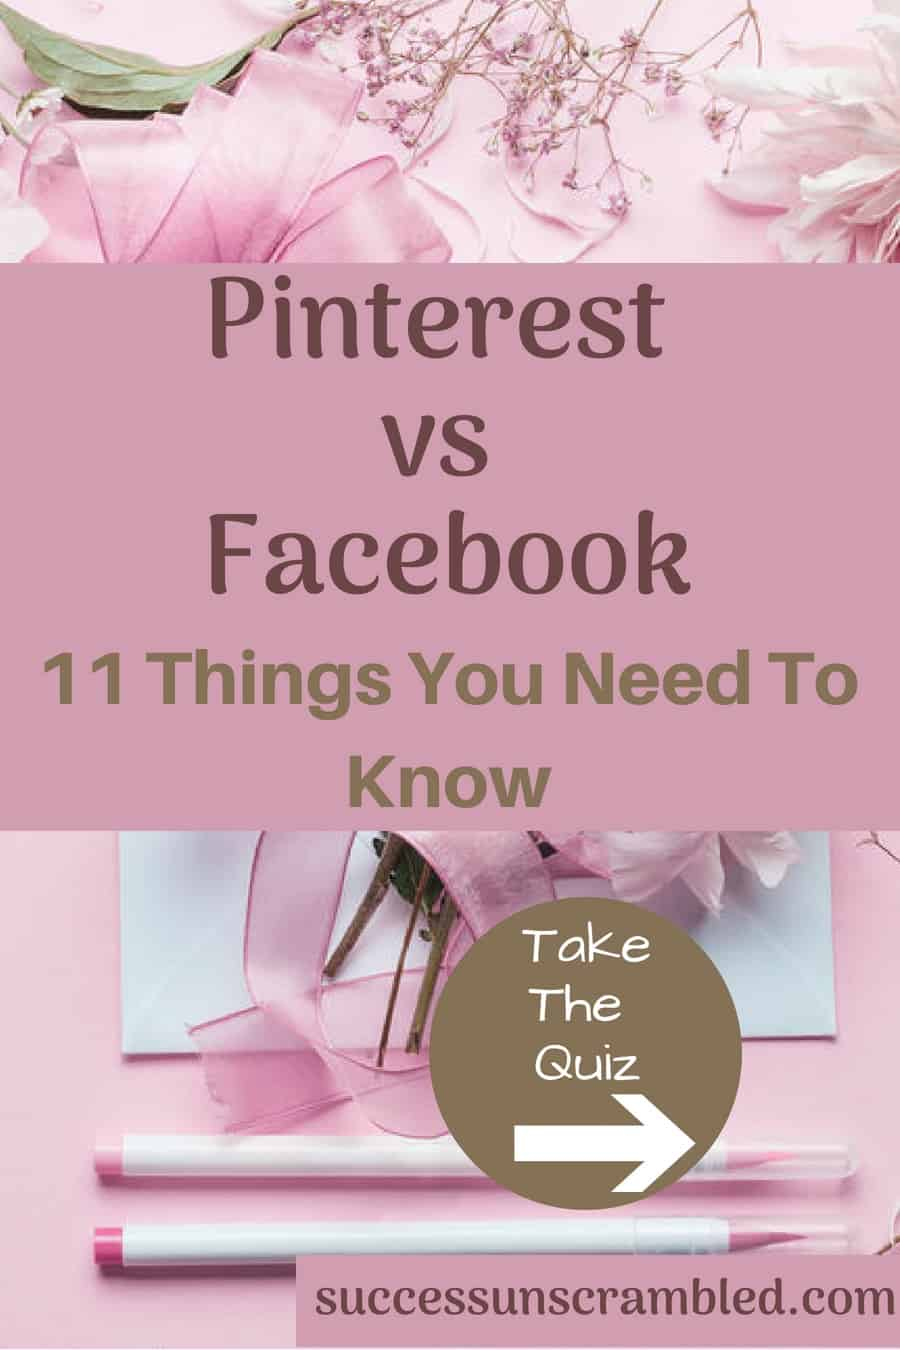 Pinterest vs Facebook - 11 Things You Need To Know